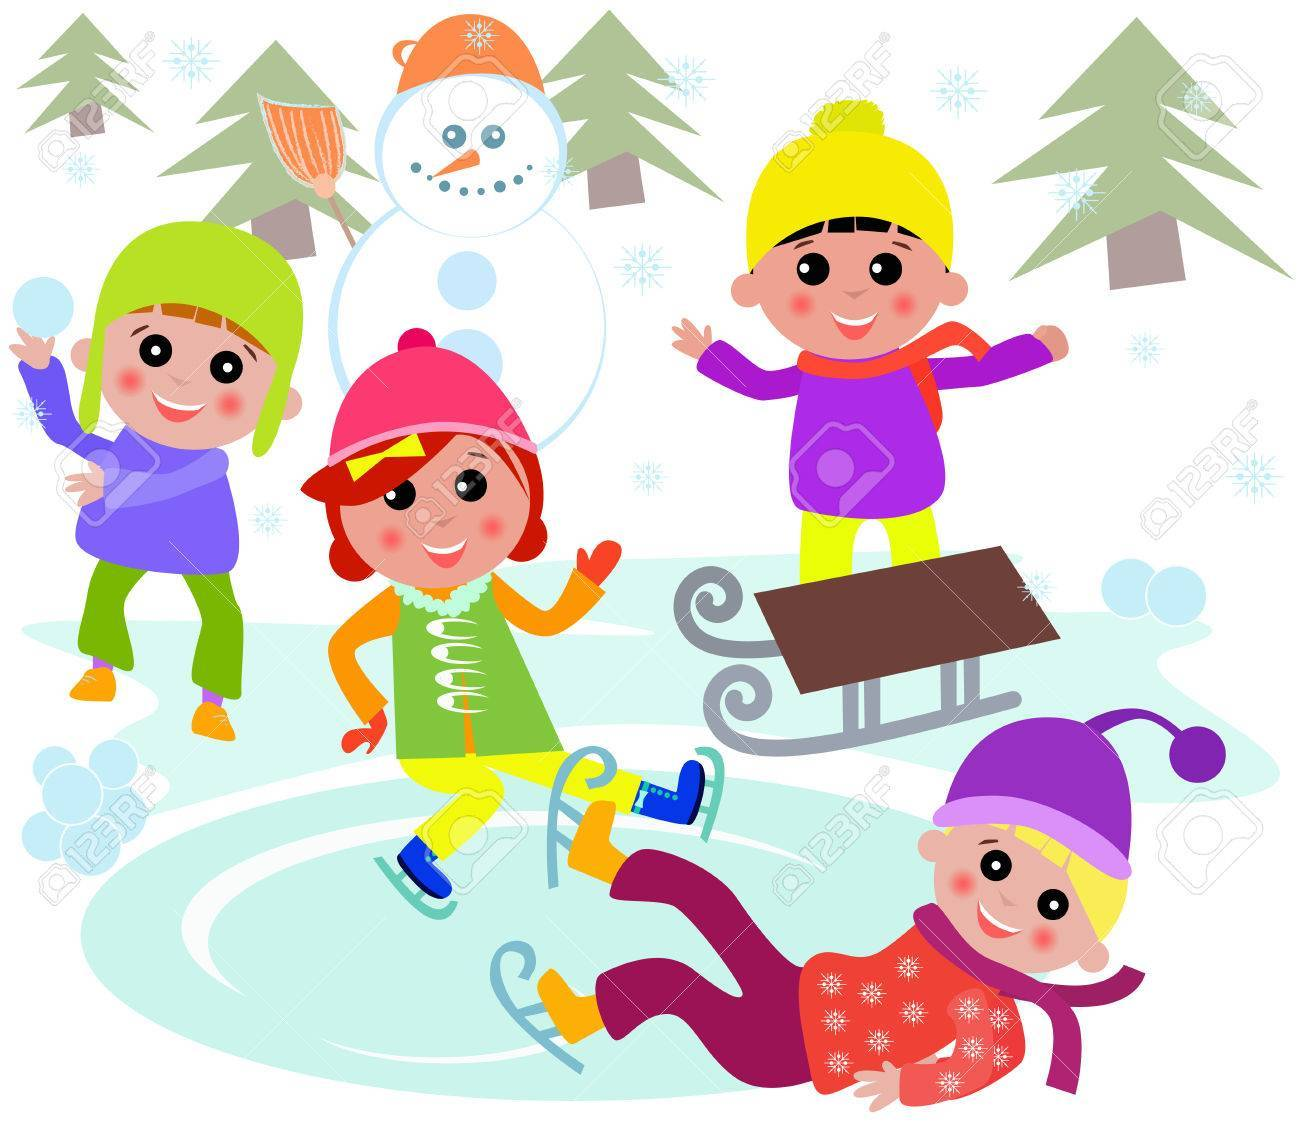 Clipart hiver graphic free download Hiver clipart 5 » Clipart Portal graphic free download